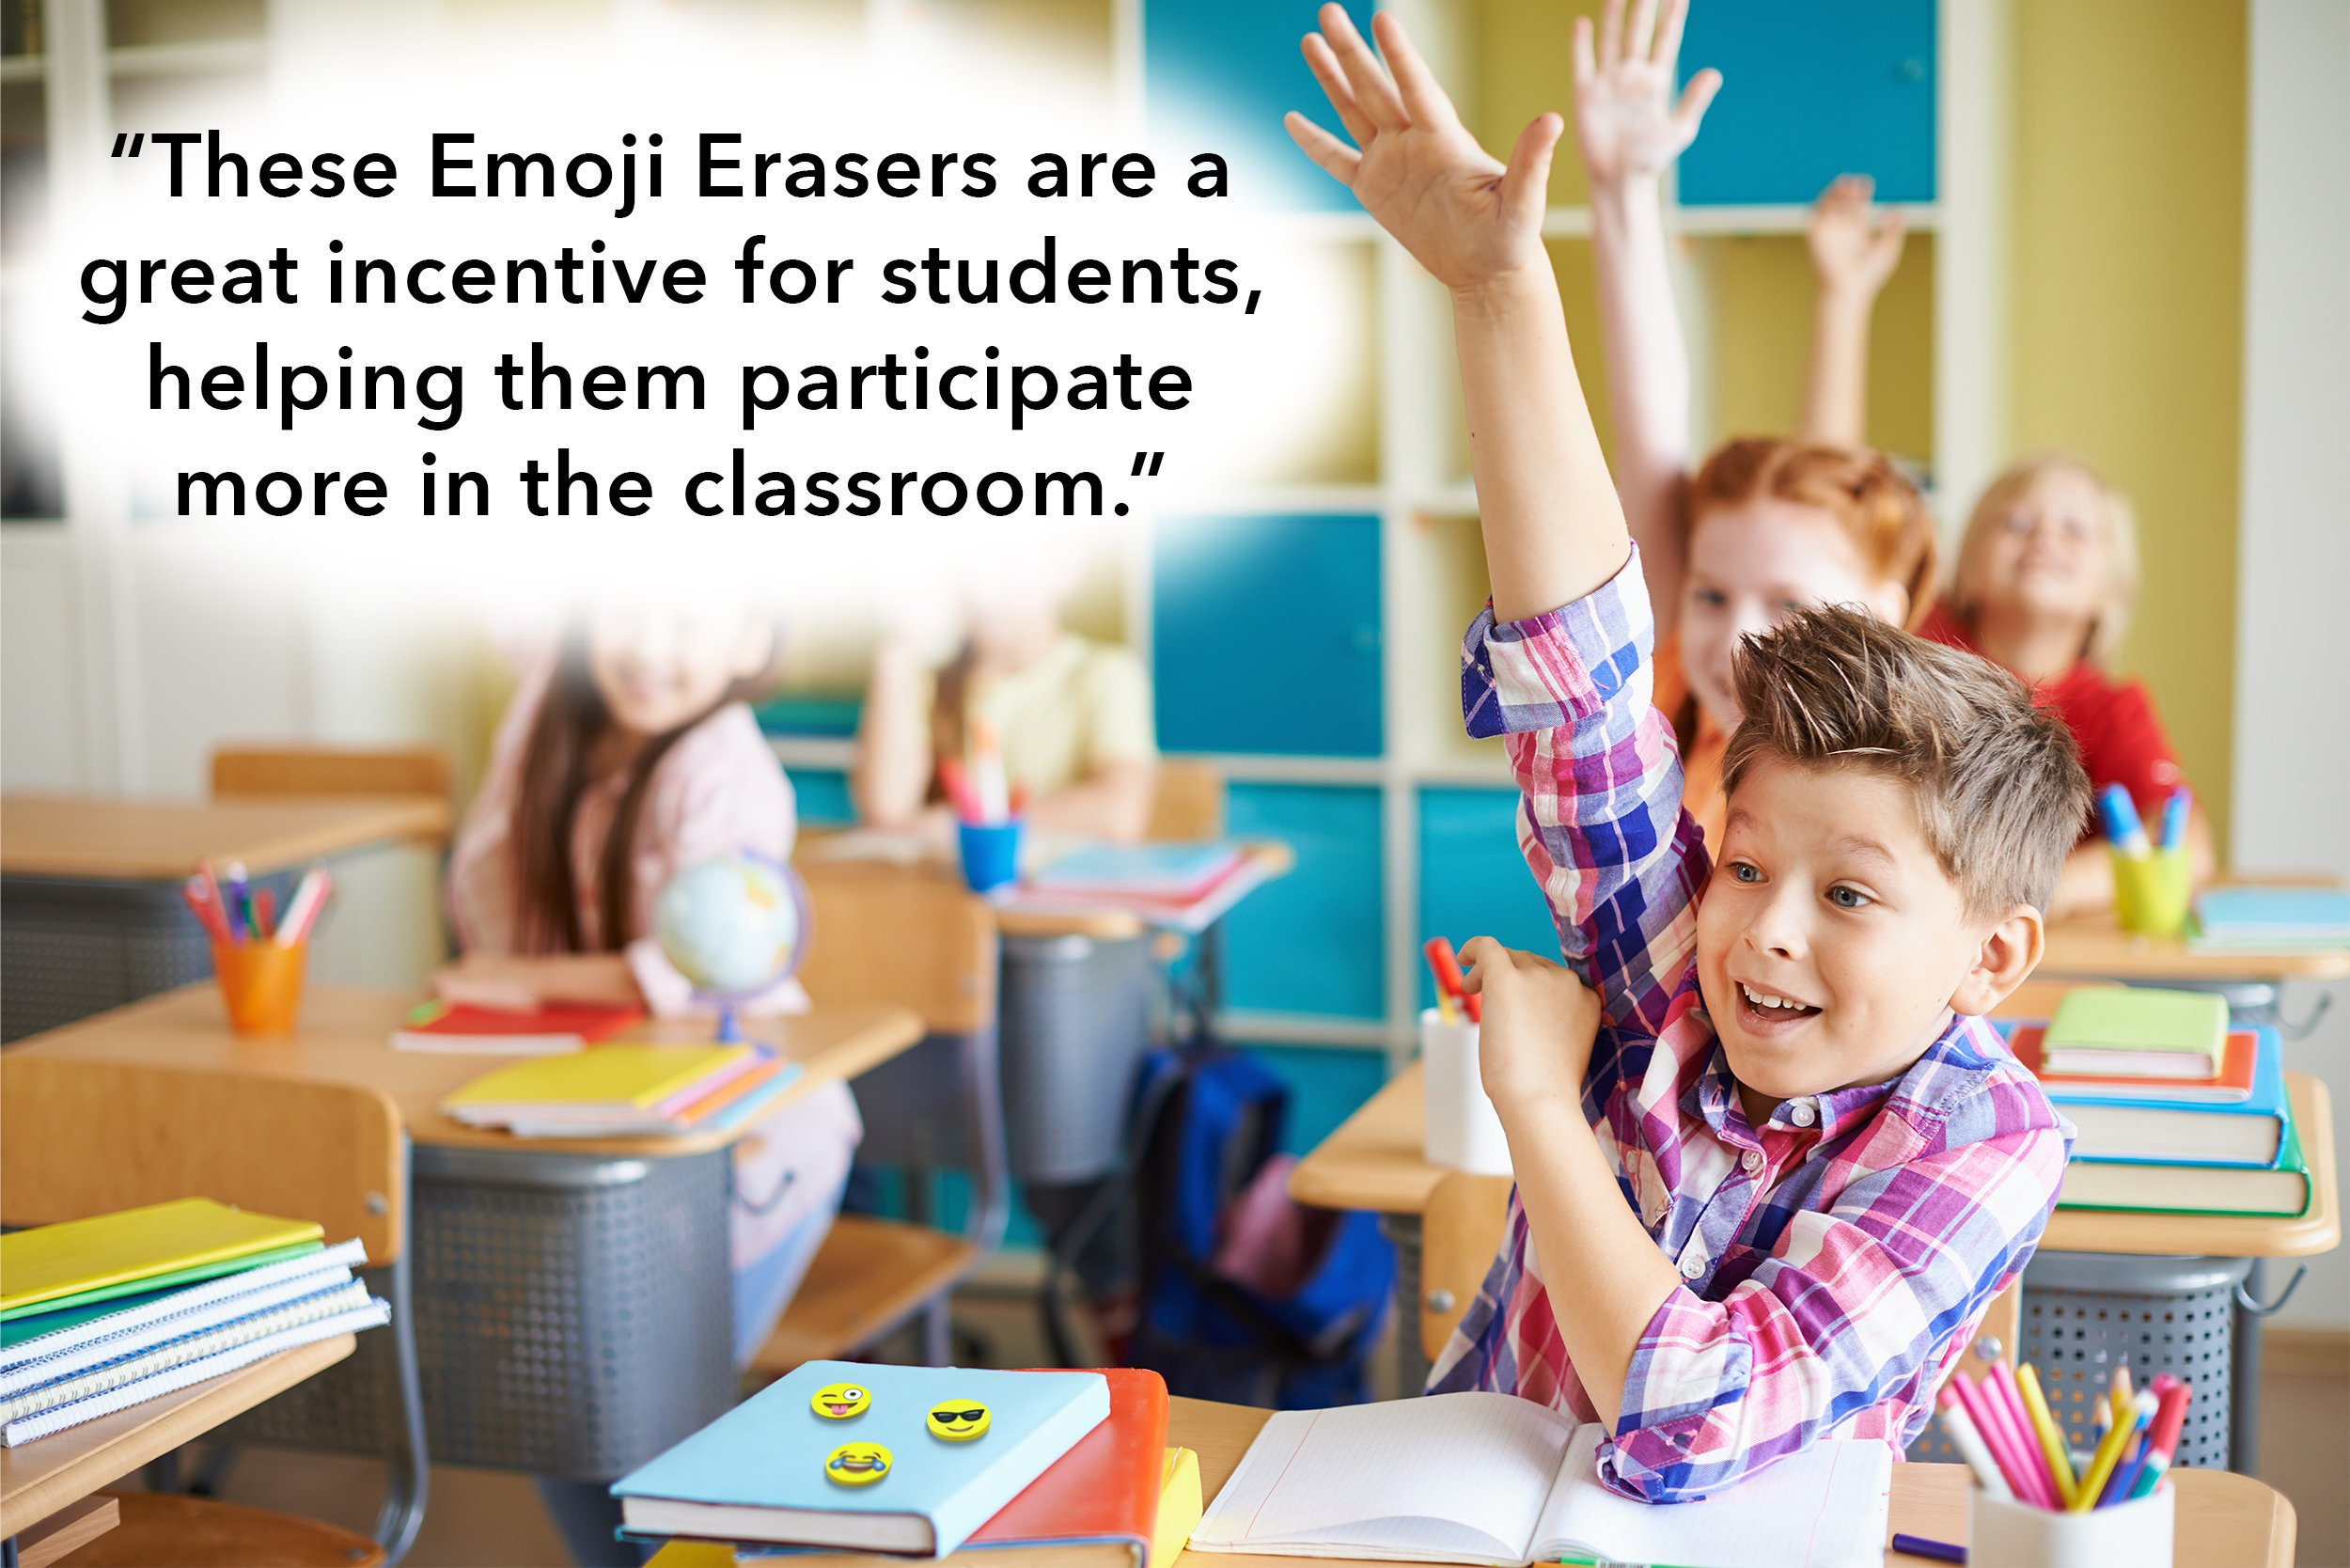 LiveEco Emoji Erasers for Kids, 60 Emoji Pencil Eraser Bulk Pack, Great as Birthday Gifts, Classroom Rewards, Party Favors, Student Incentives, School Supplies, Pair with Fun Pencils by LiveEco (Image #7)